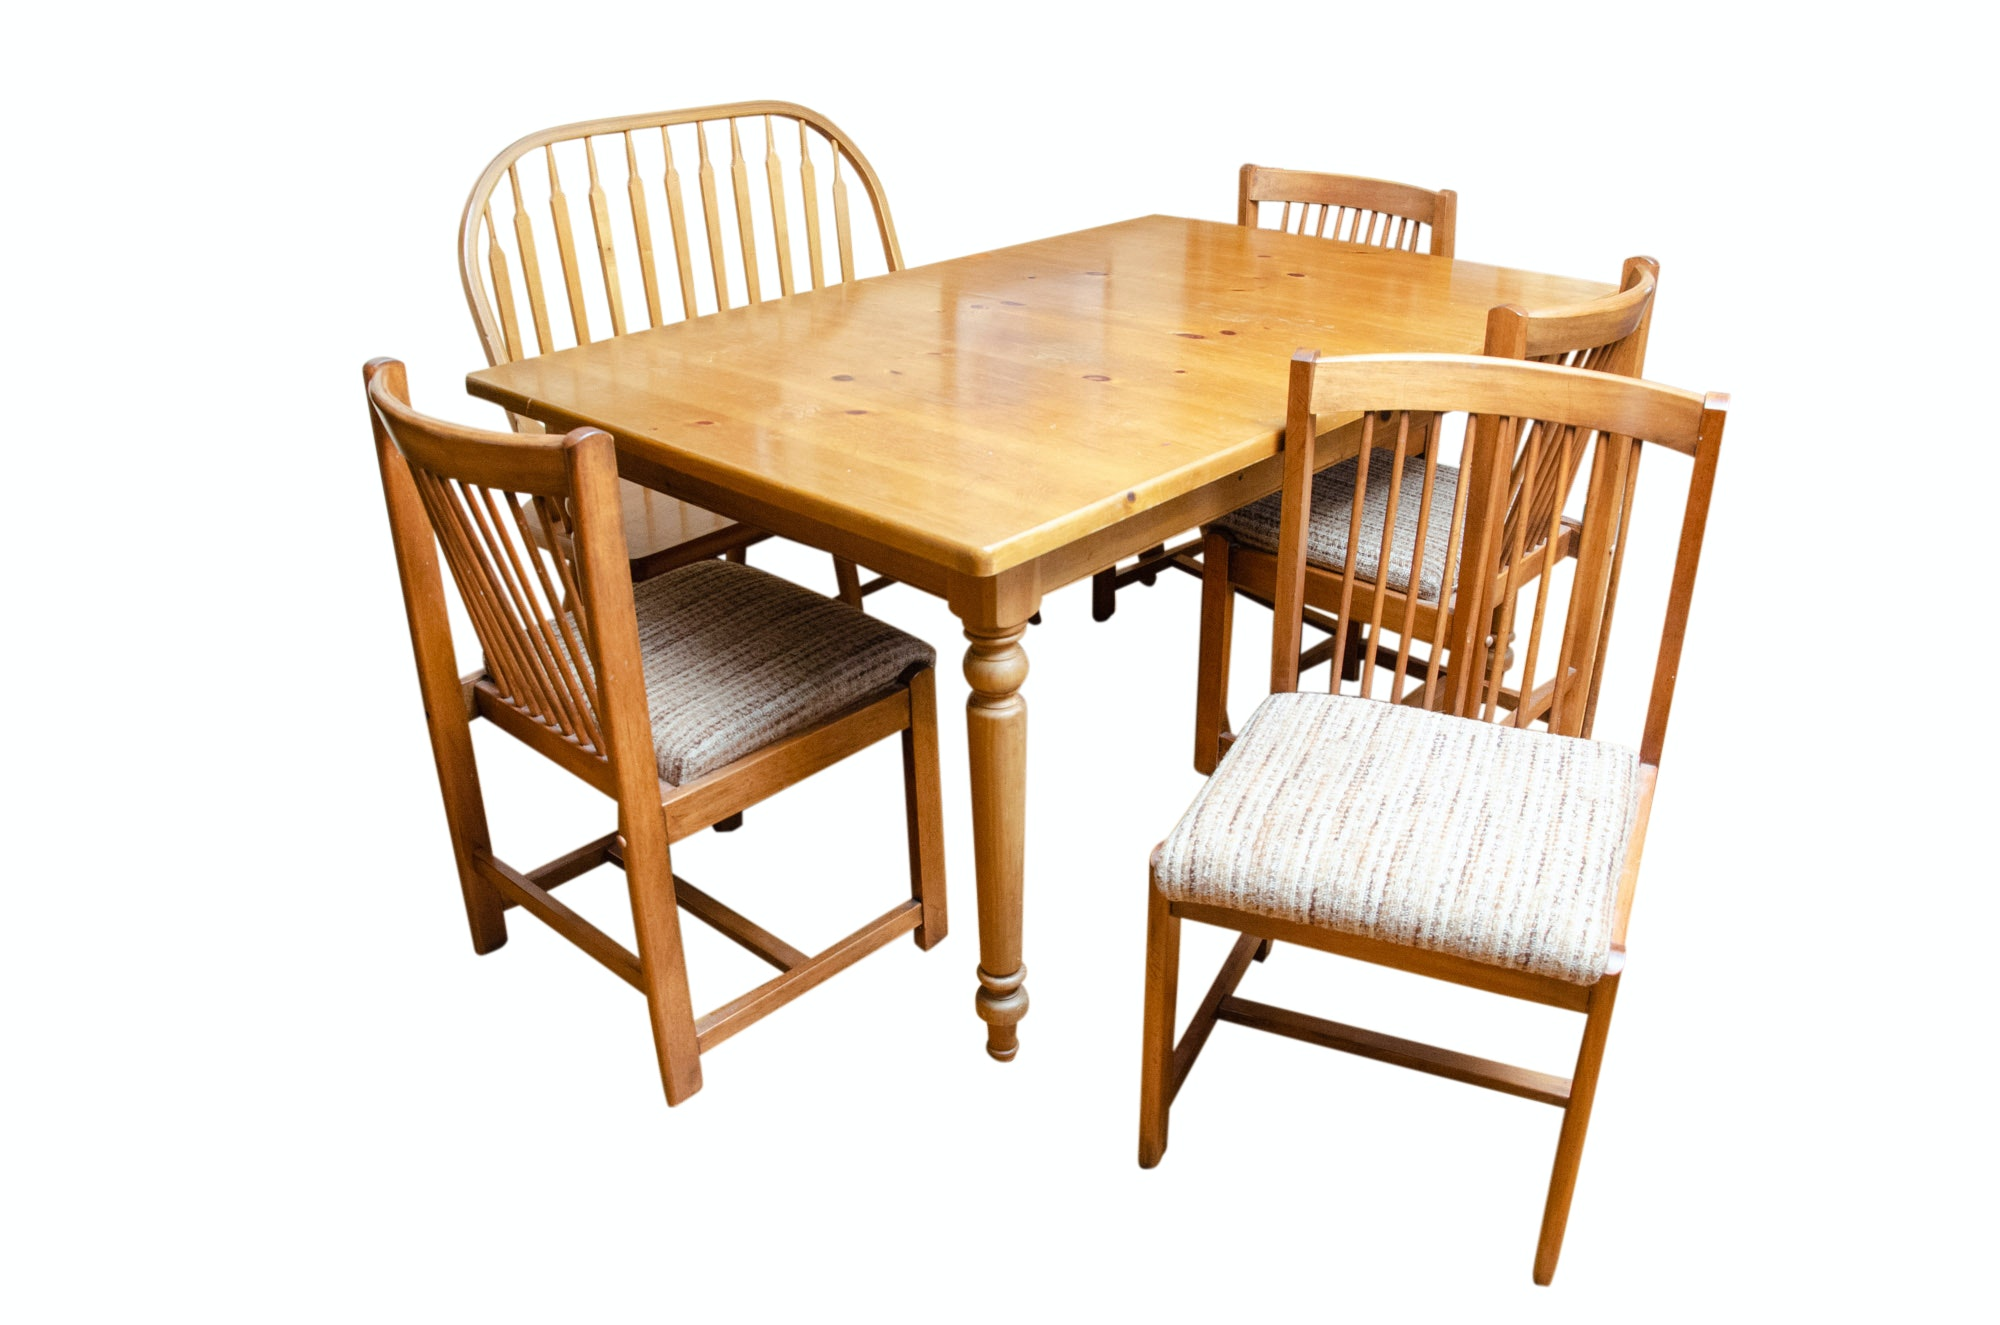 French Country Style Dining Table, Windsor Bench and Chairs